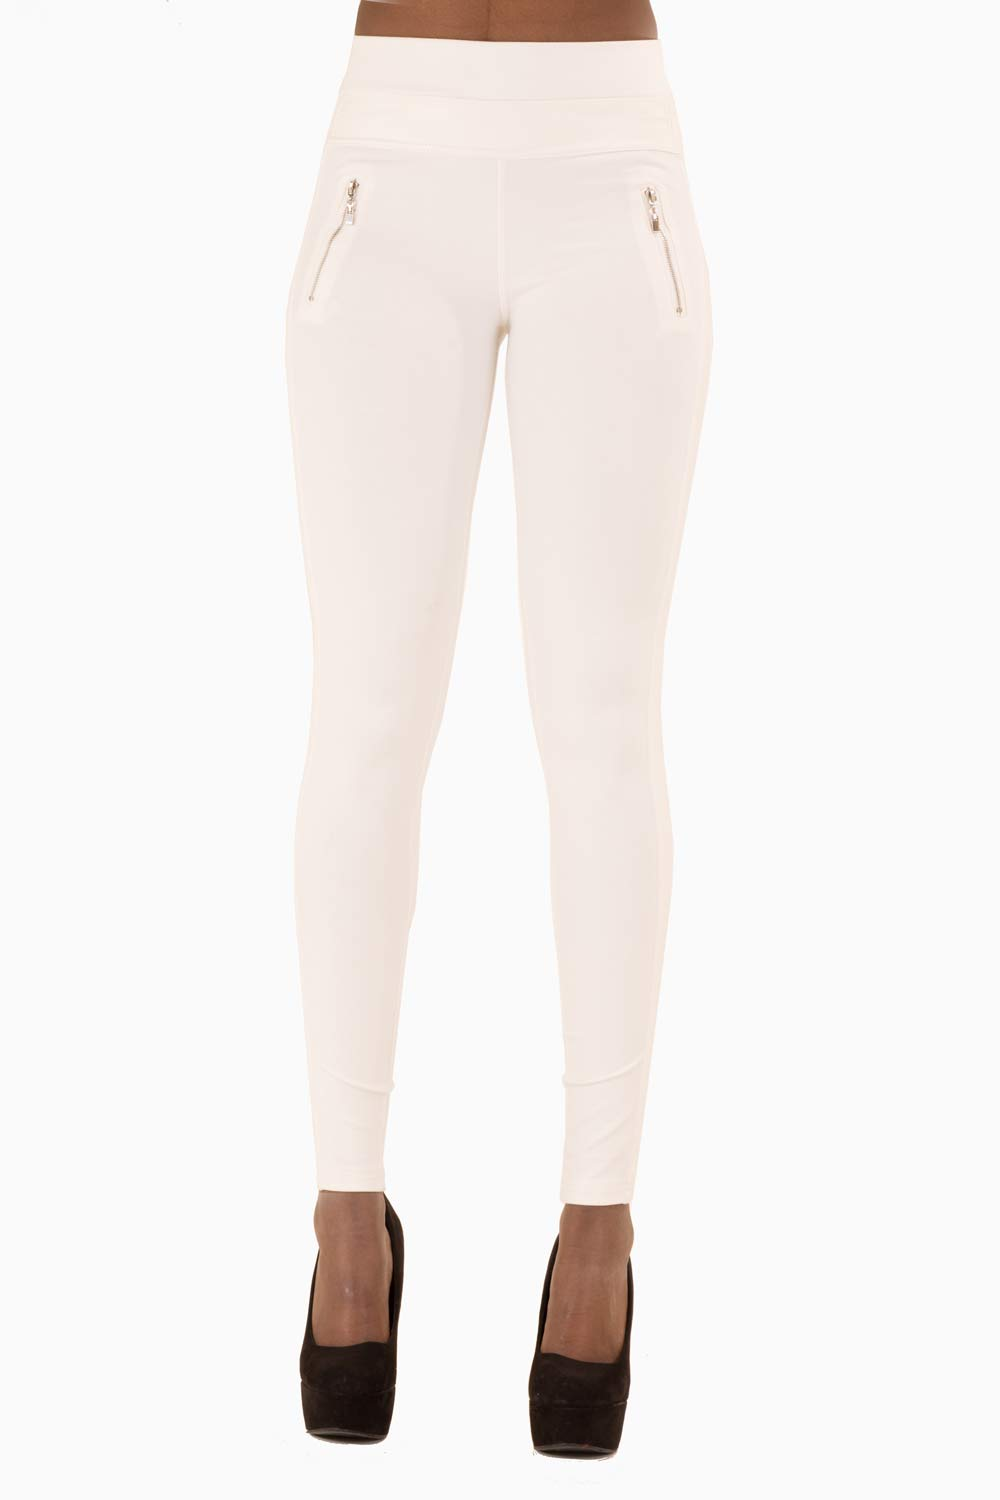 Buy Smart trousers from the Womens department at Debenhams. You'll find the widest range of Smart trousers products online and delivered to your door. Shop today!